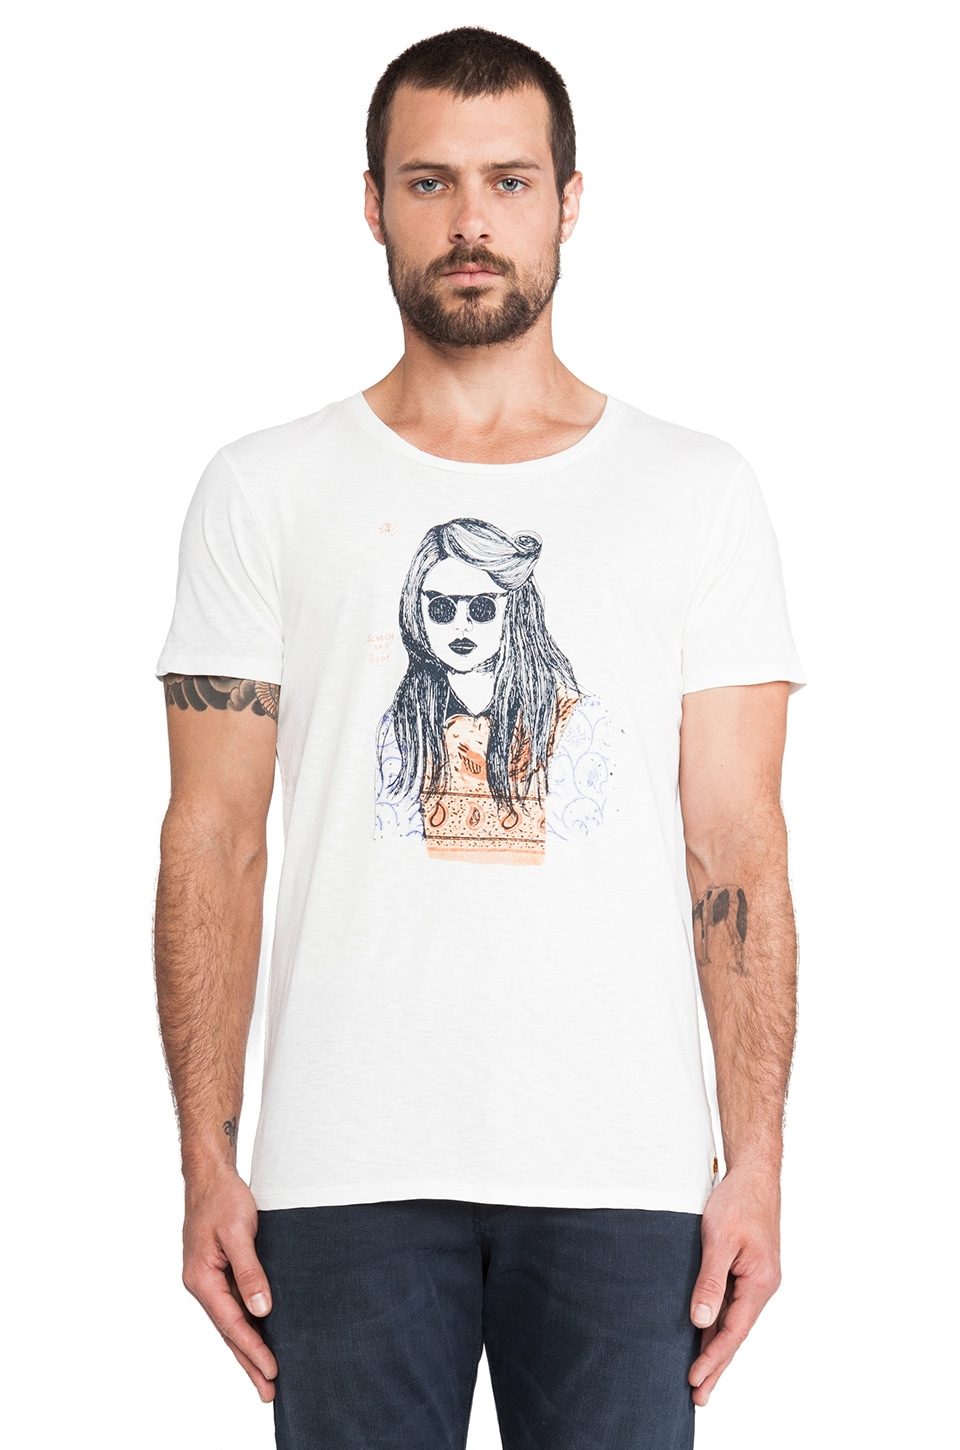 Scotch & Soda 3x Different Artwork Crewneck Tee in White